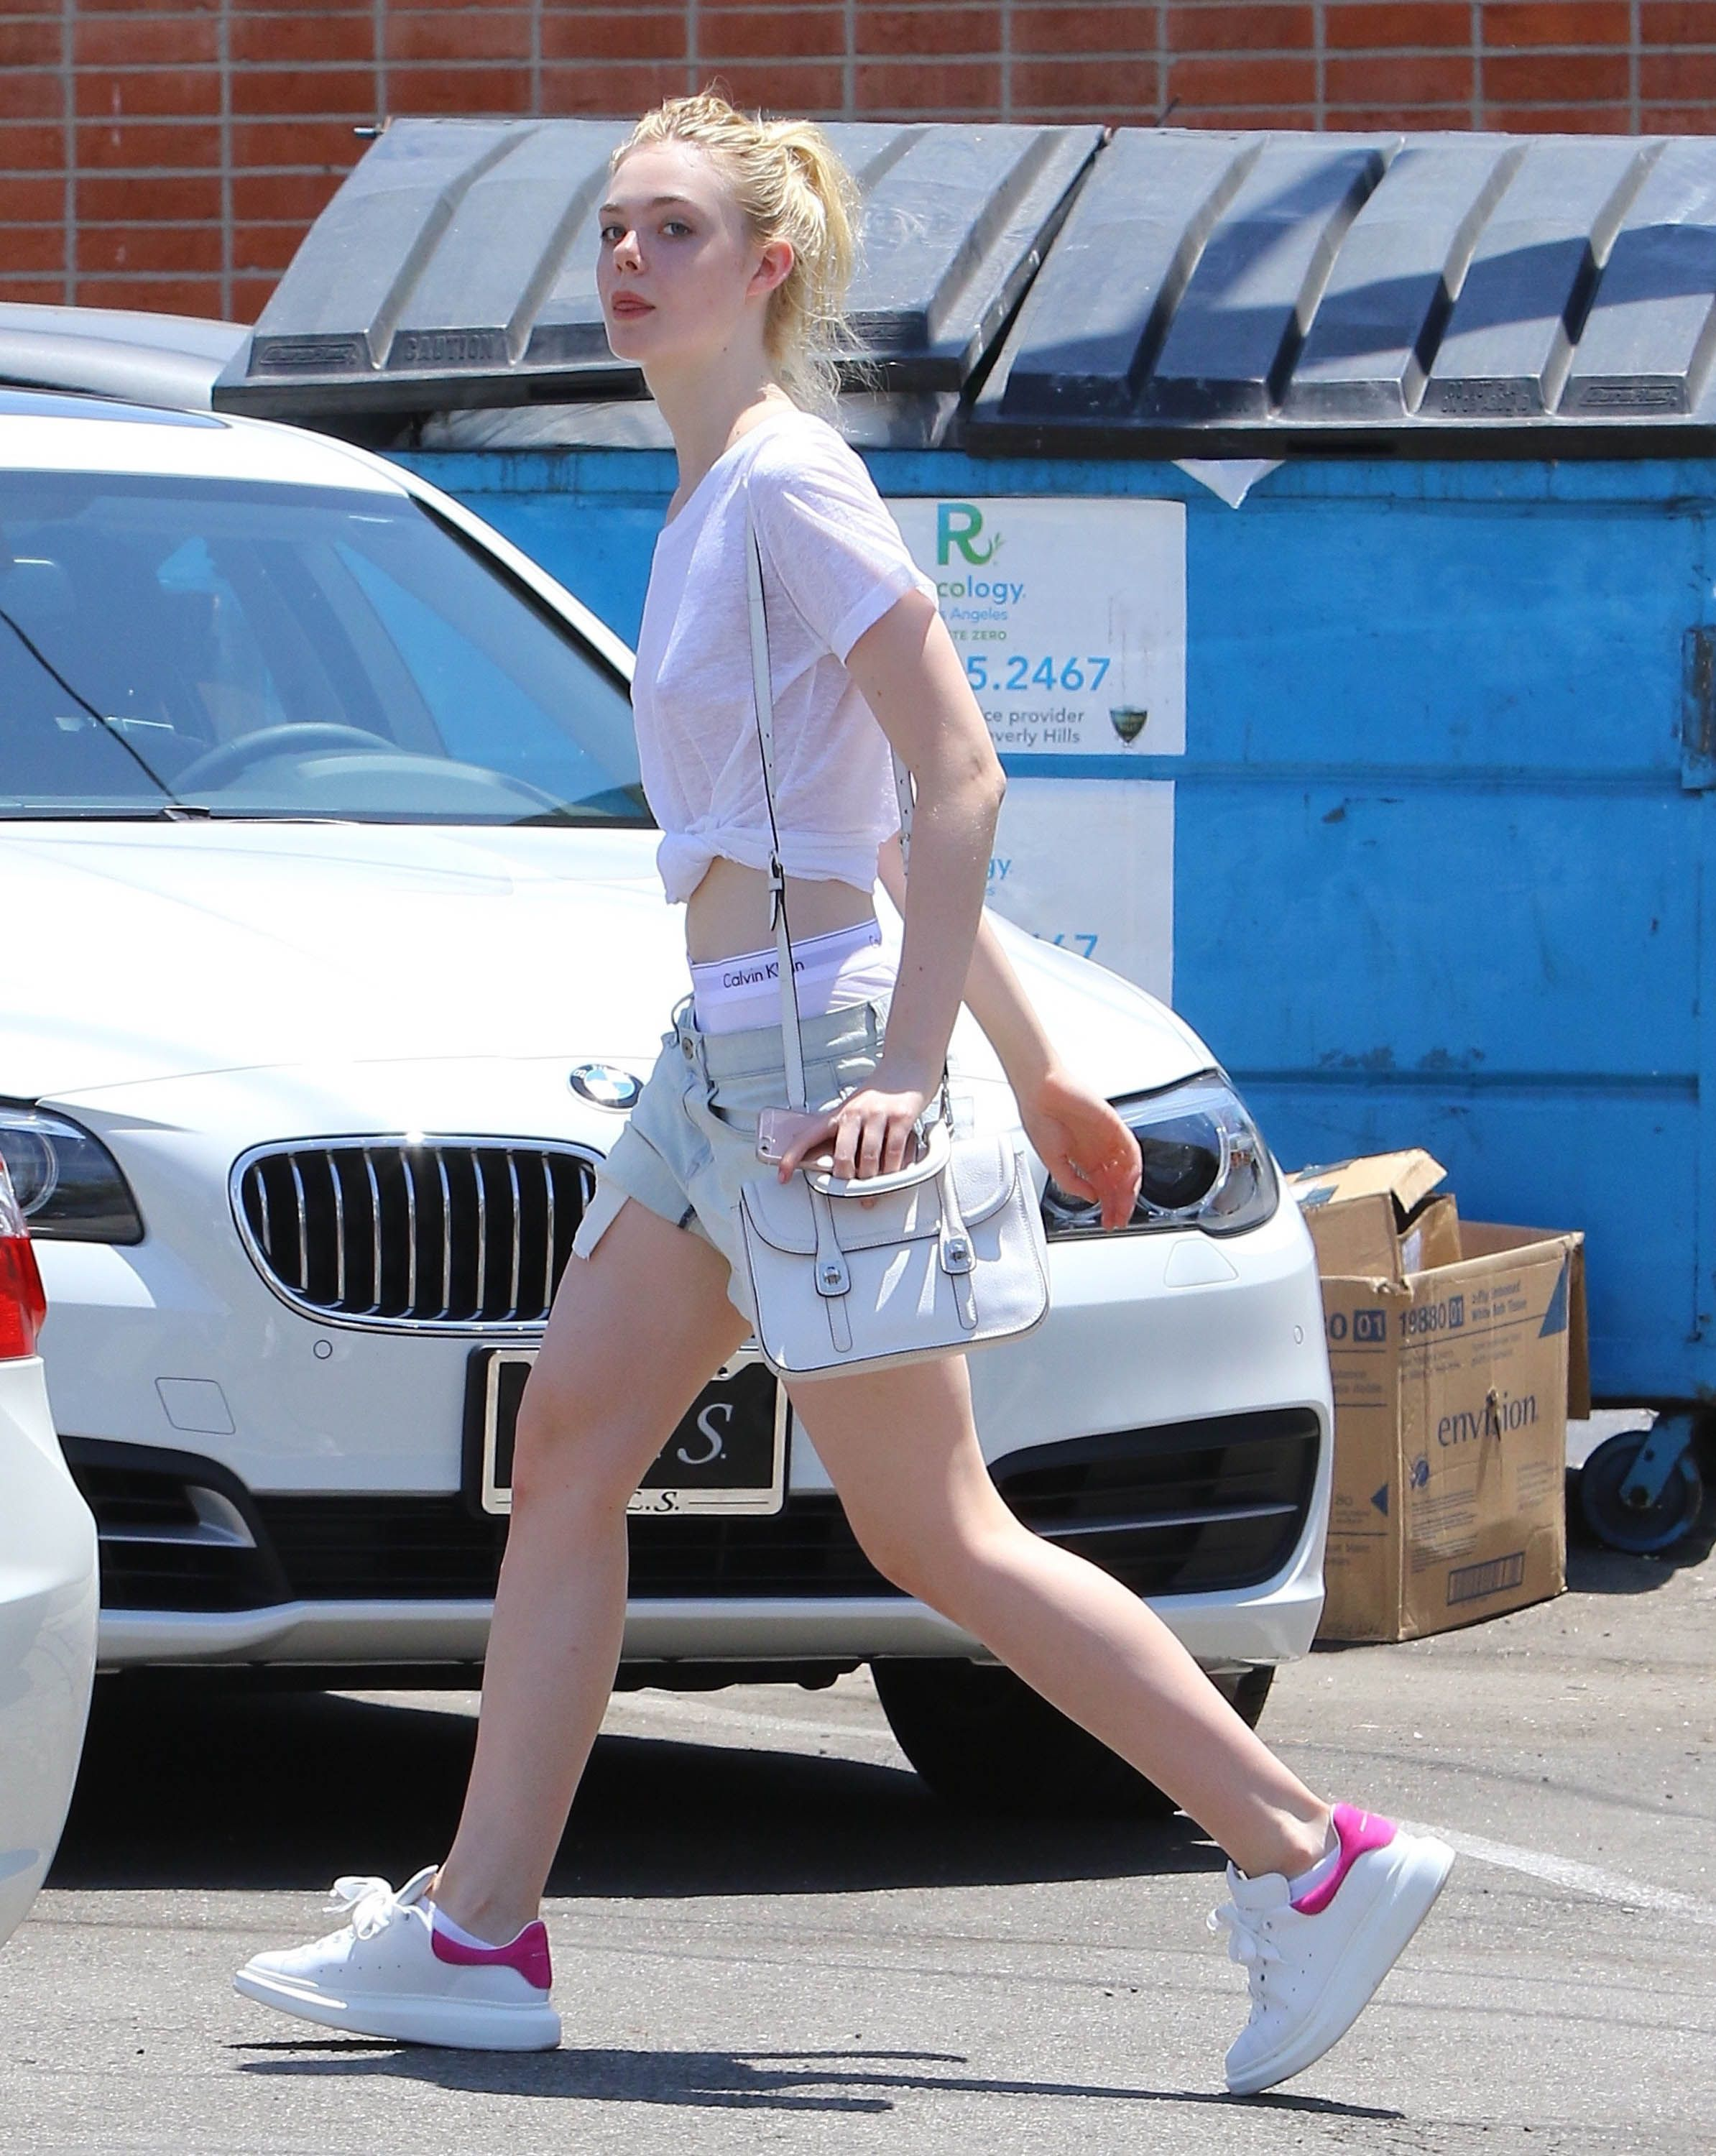 paparazzi photos of elle fanning braless and showing undies out in